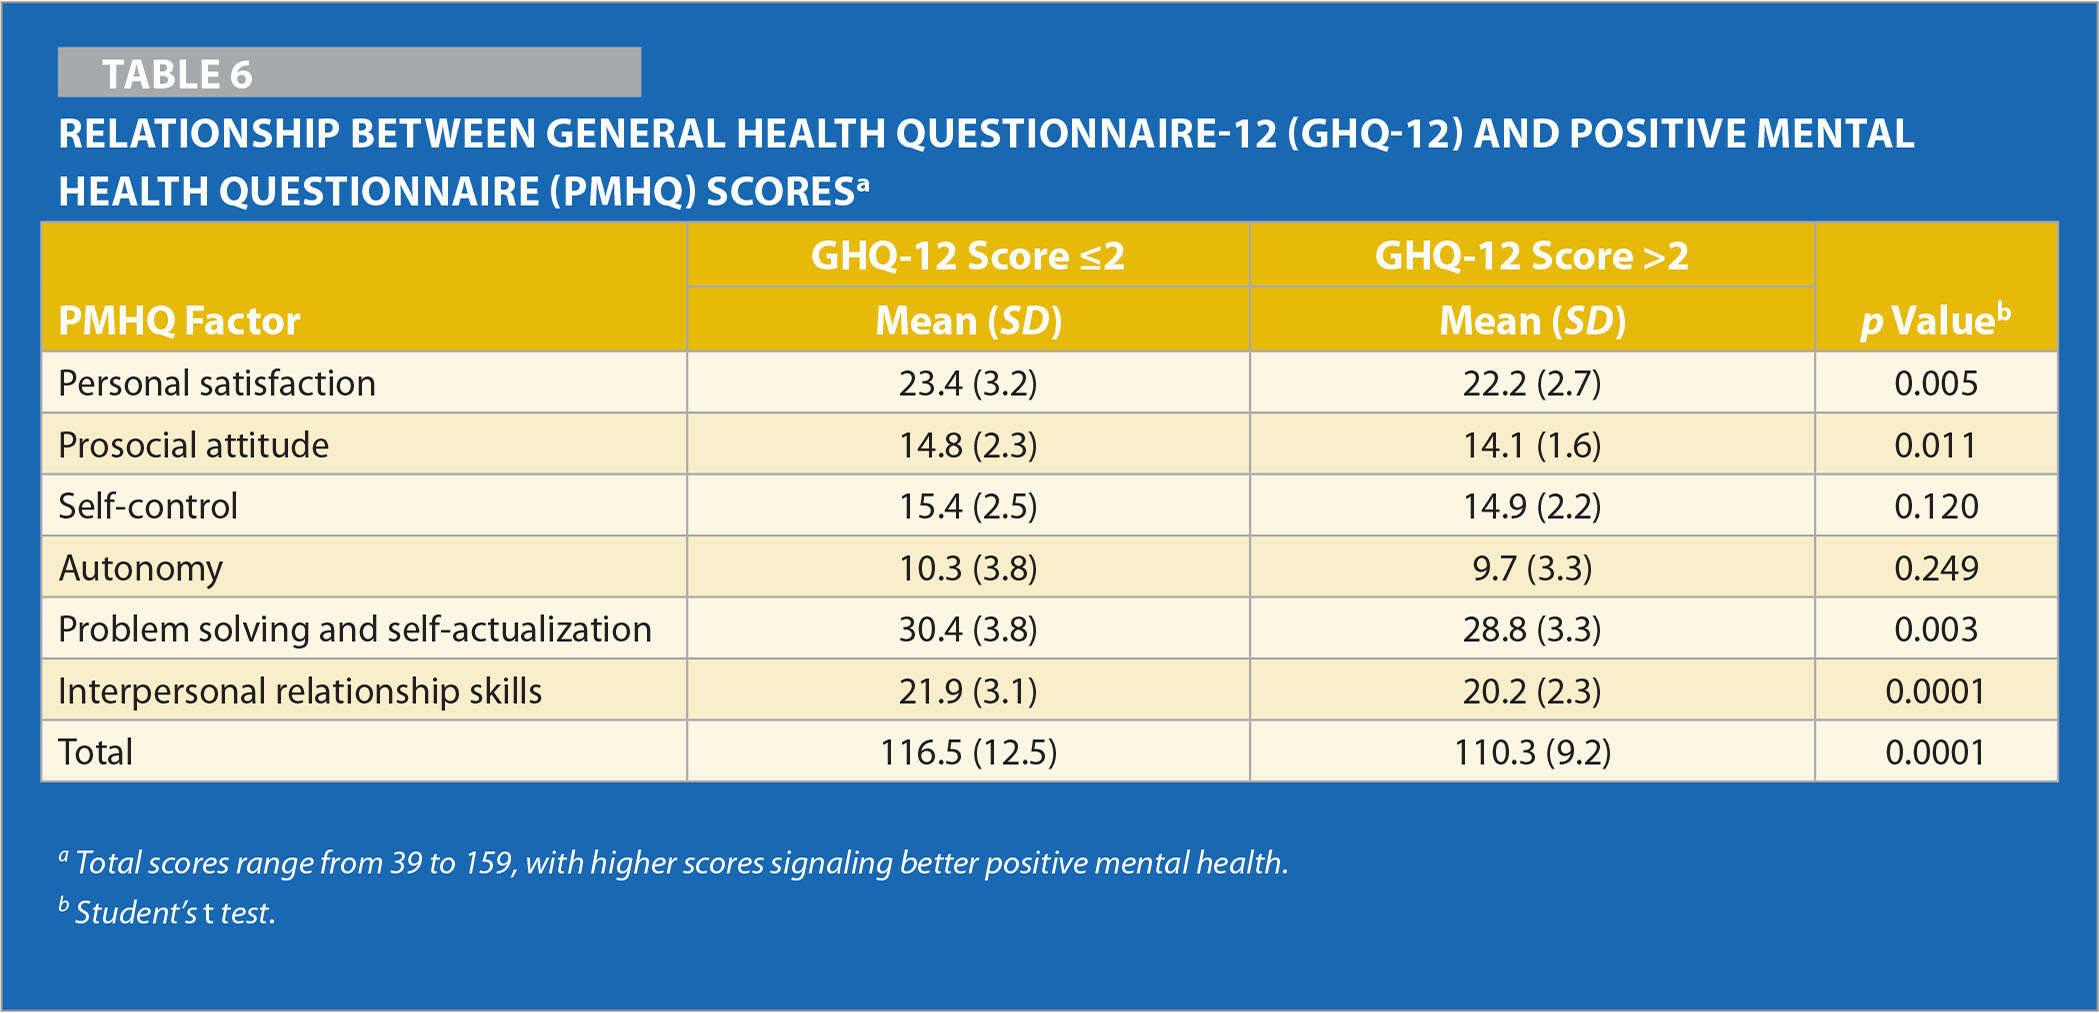 Relationship Between General Health Questionnaire-12 (GHQ-12) and Positive Mental Health Questionnaire (PMHQ) Scoresa